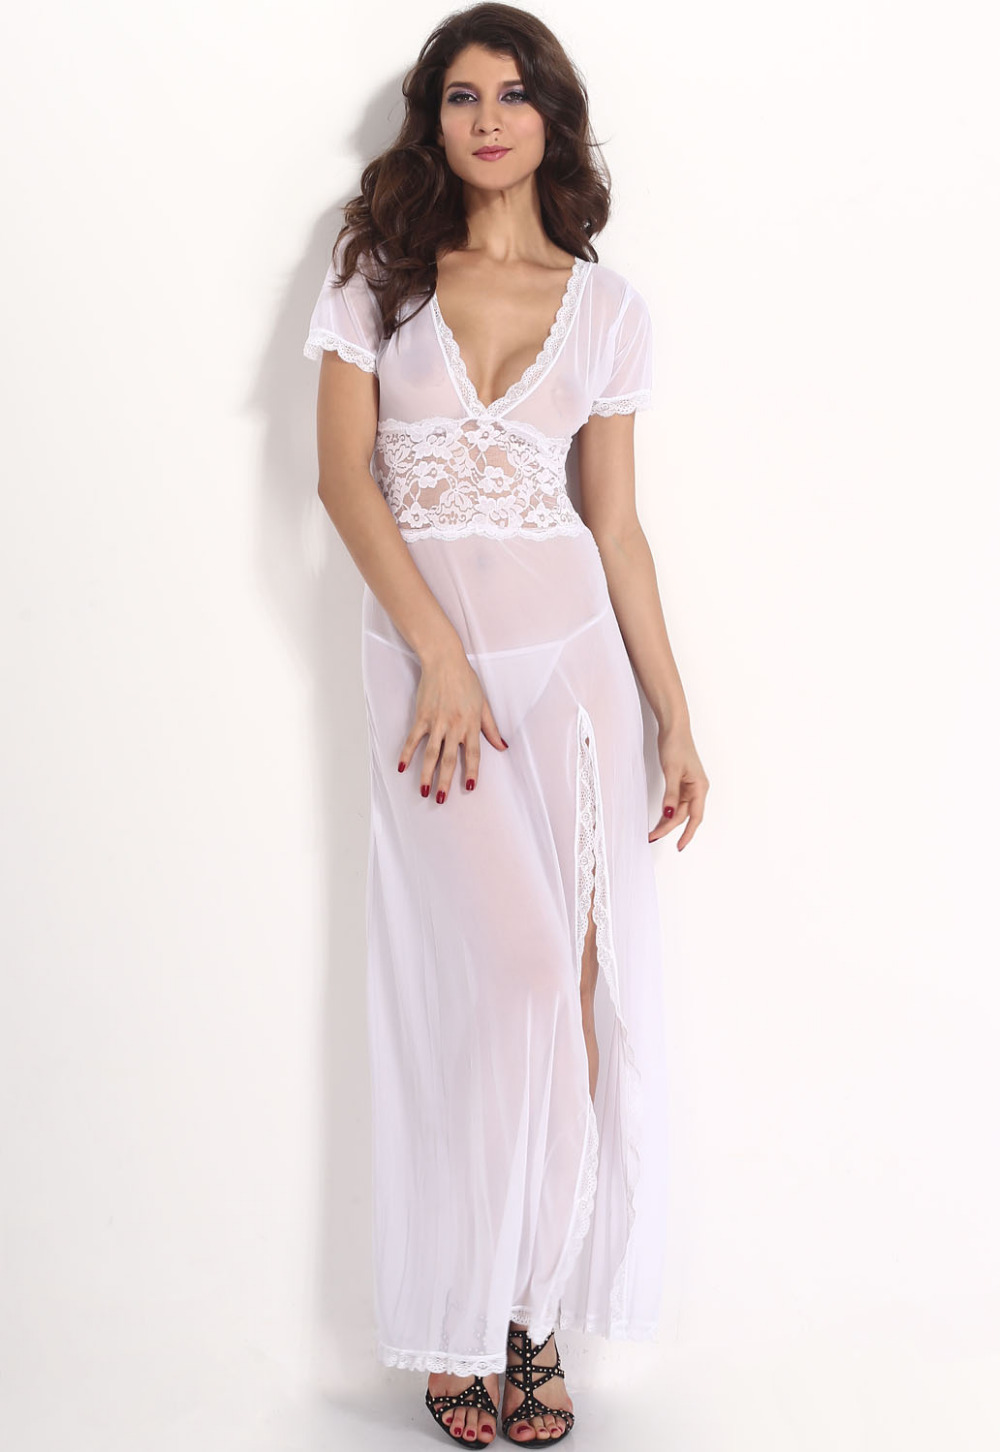 classic porn  sheer nightie babydoll Nightdress Sexy Babydoll Plus Size White Mesh and Lace V Neck Lingerie Gown  6366 Hot Sale